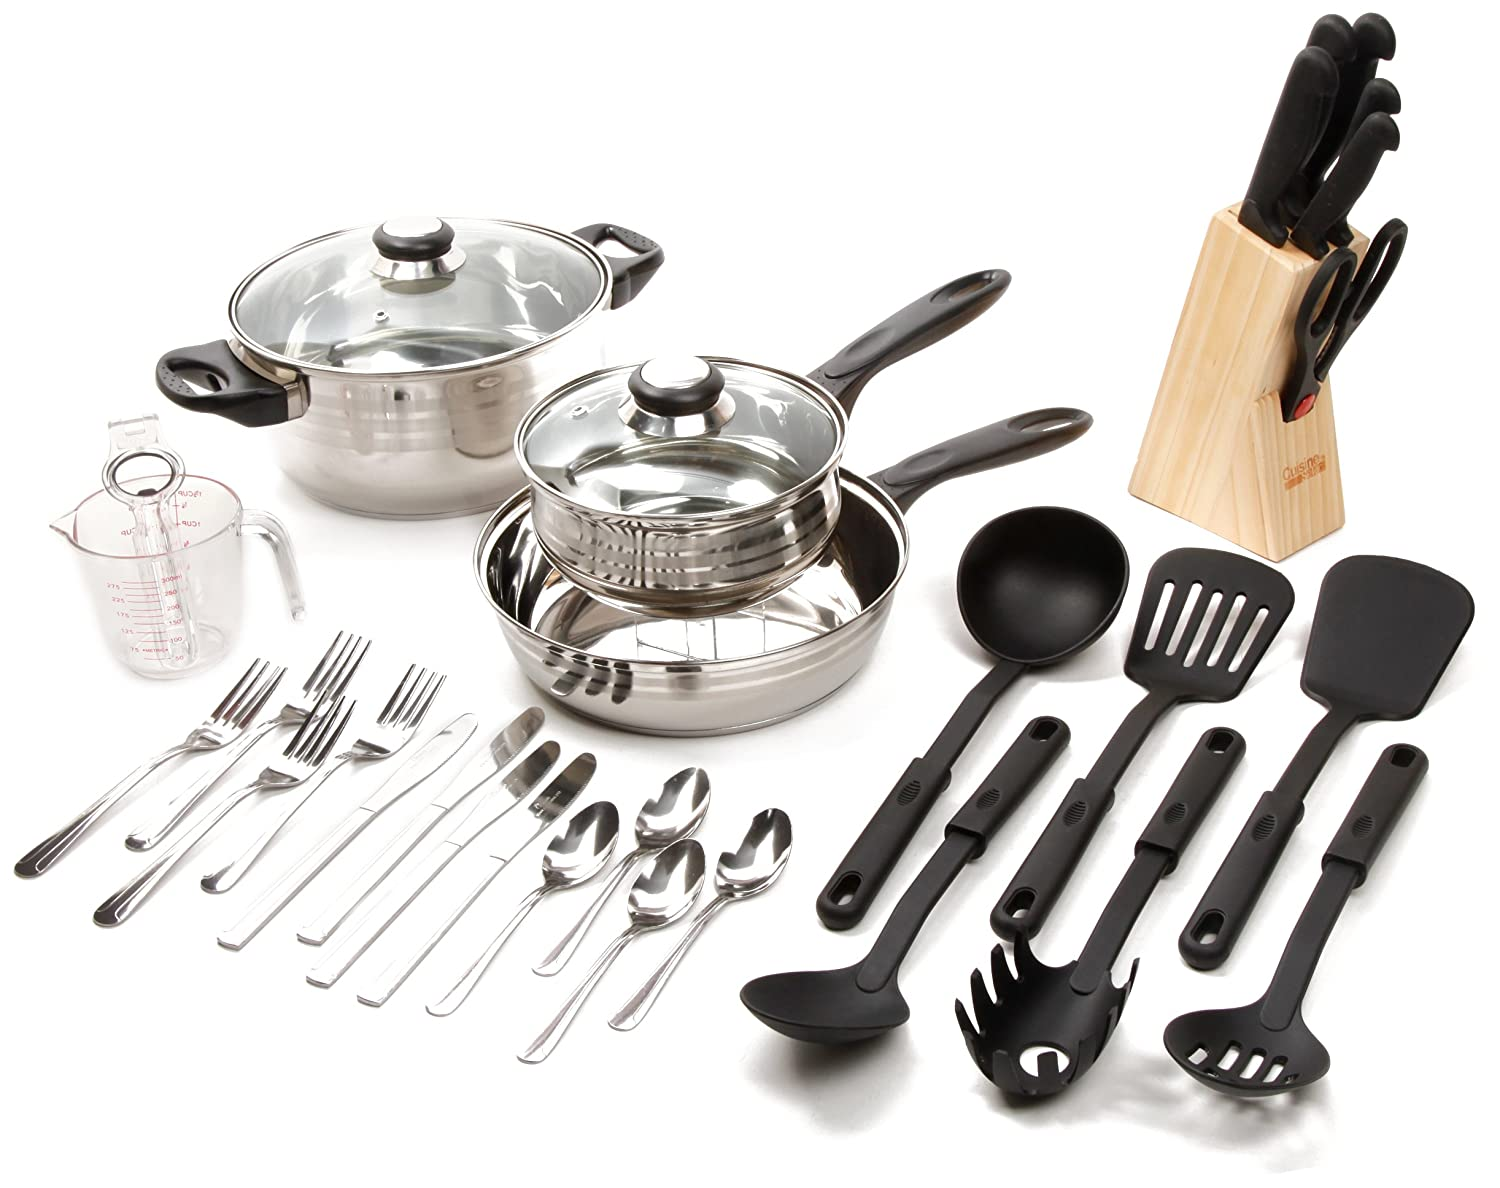 Gibson Value 89117.32Lybra 32 Piece Cookware Combo Set, Mirror Polished Stainless Steel